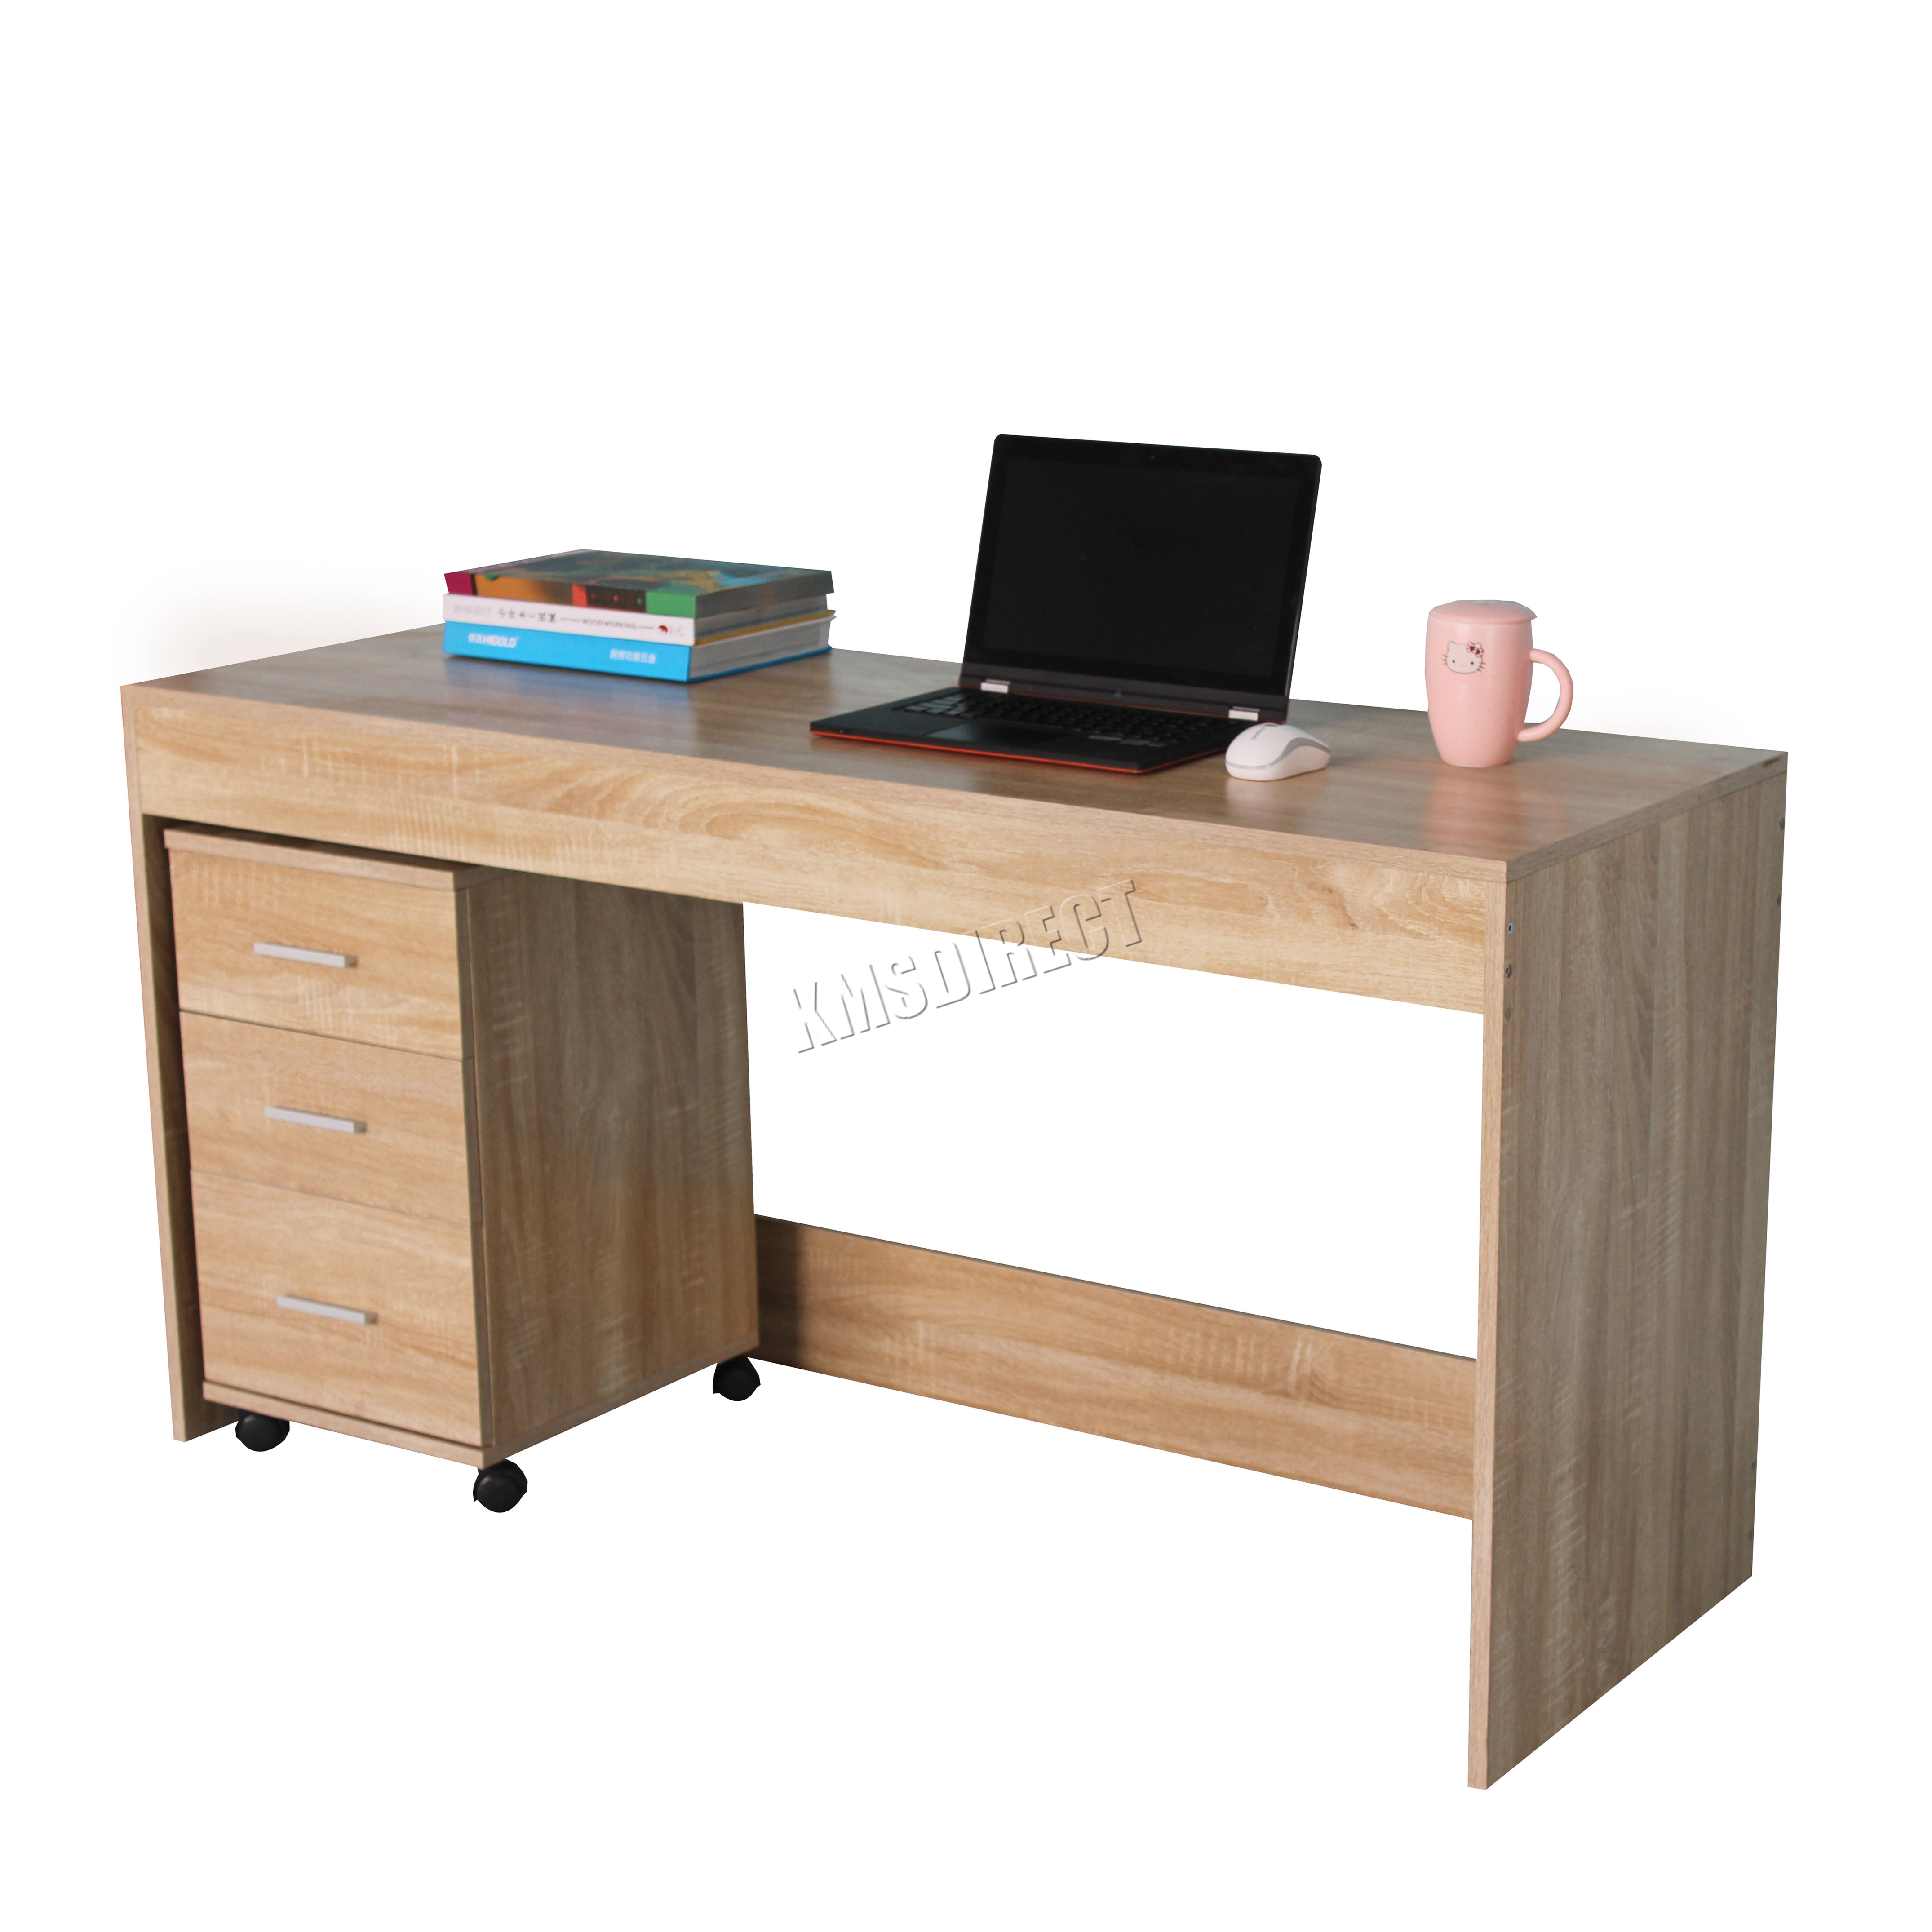 Foxhunter Computer Desk Table With 3 Drawers Home Office Furniture Cd09 Walnut Ebay